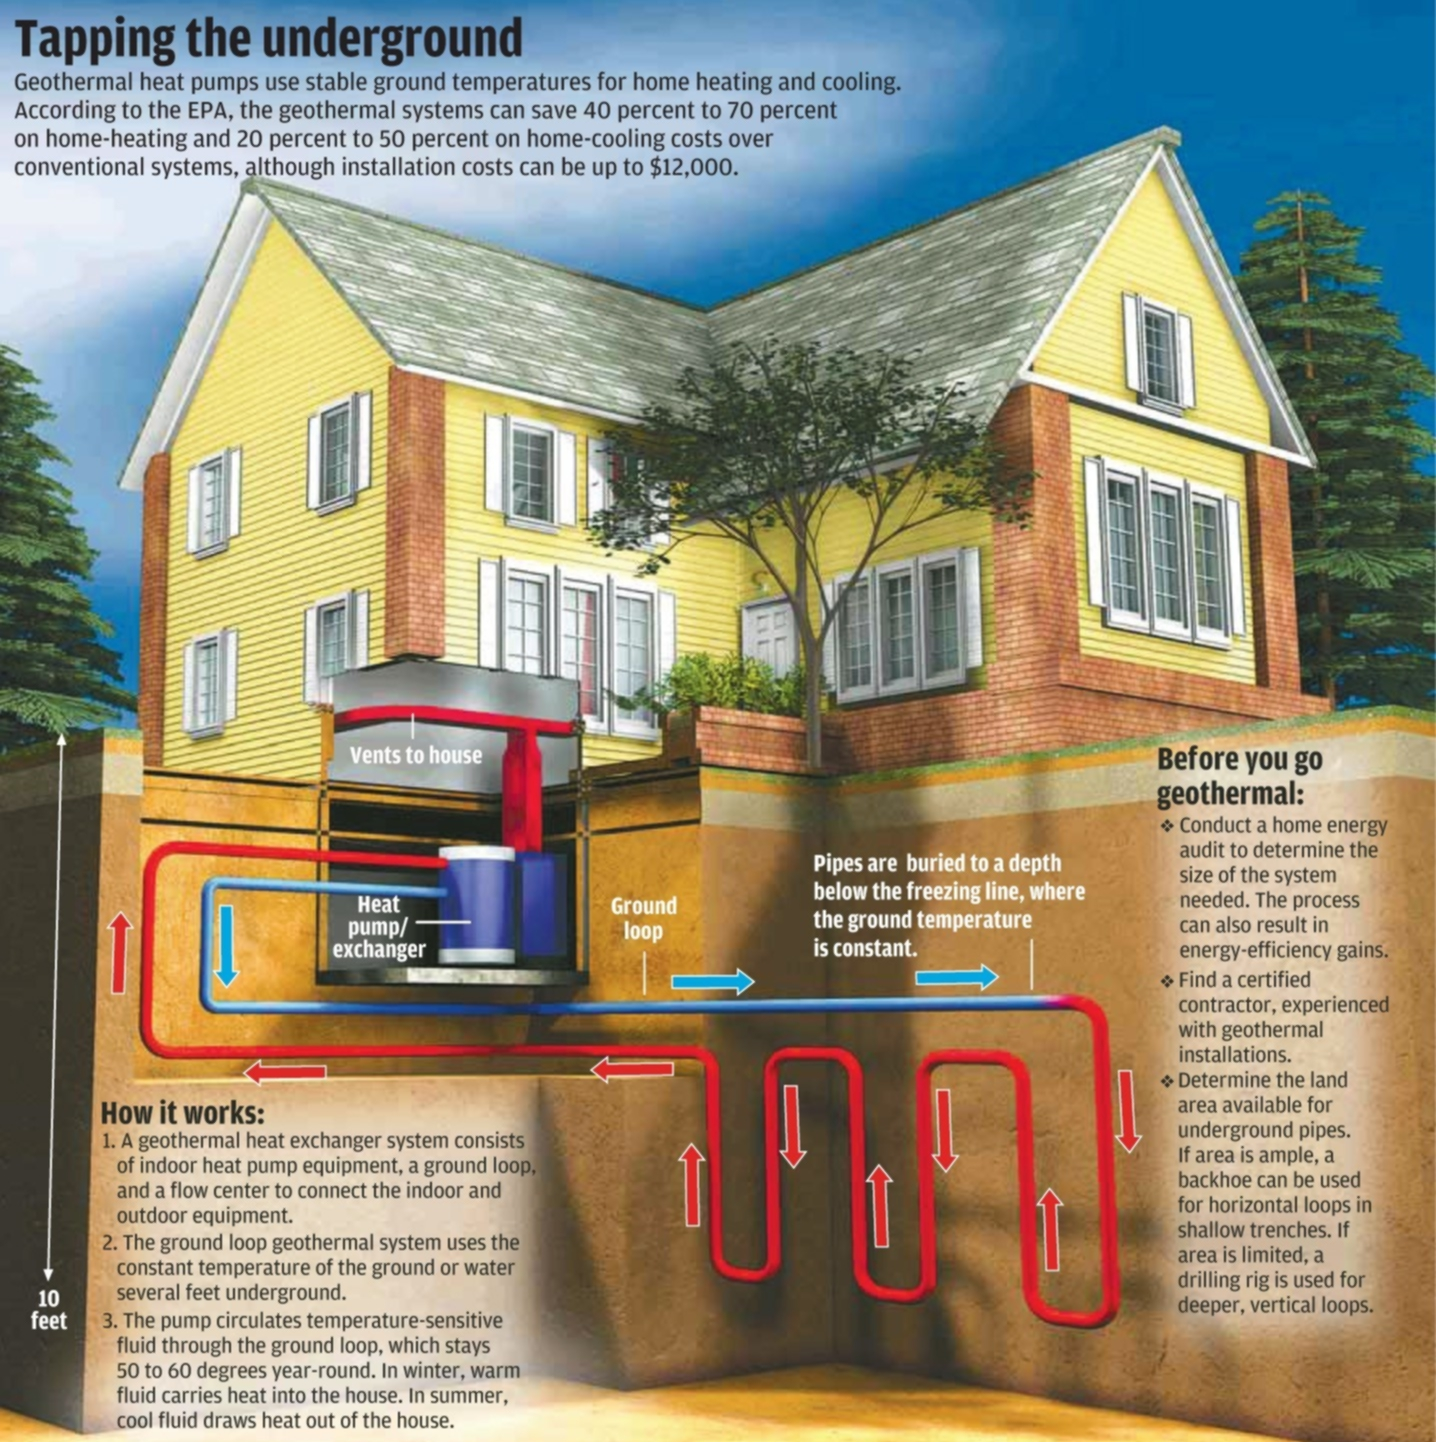 ... of explaining how geothermal heating and air conditioning systems work